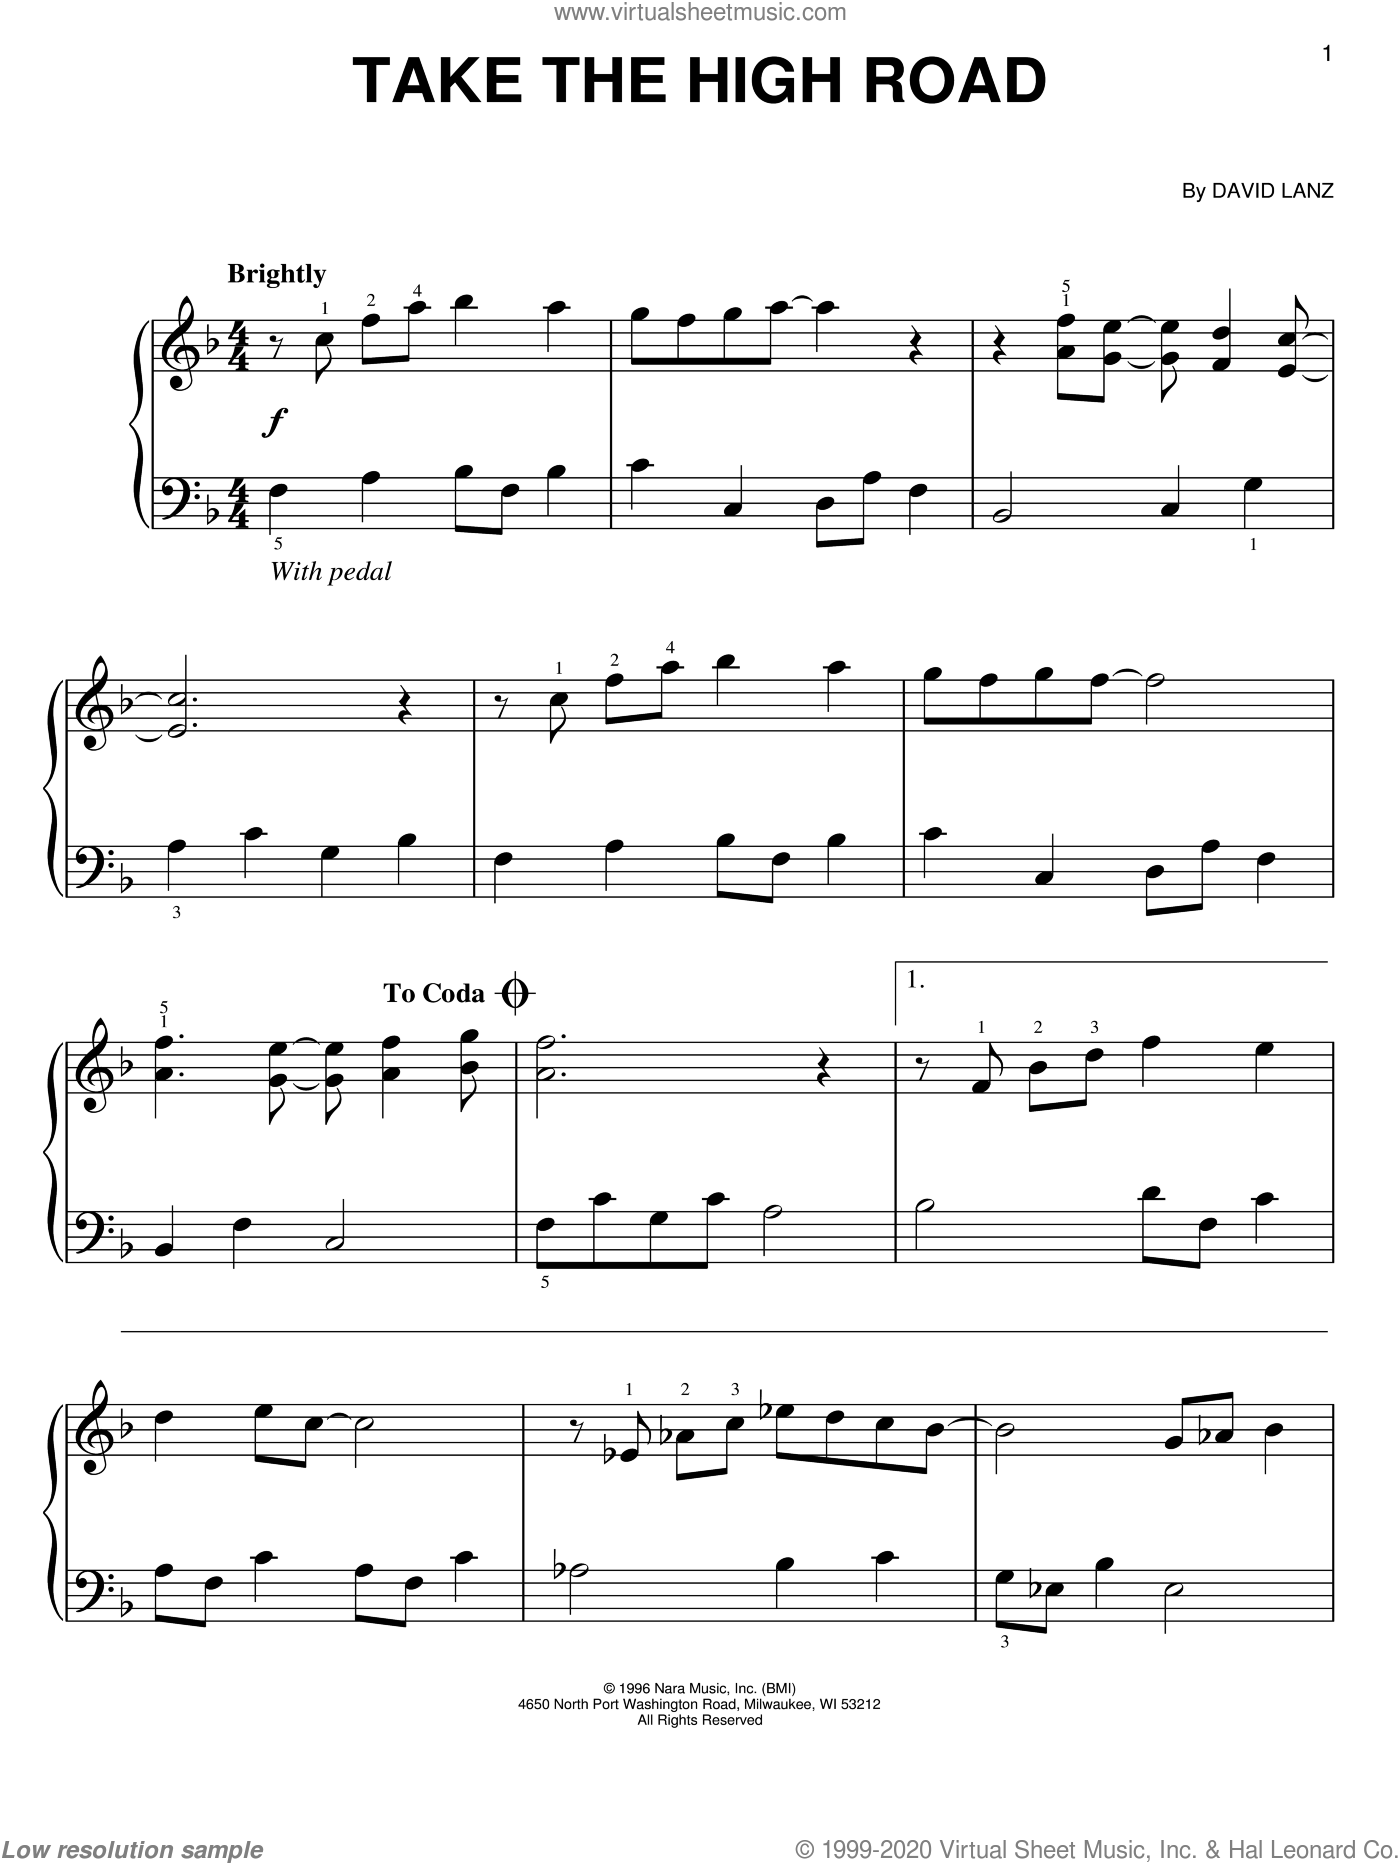 Take The High Road sheet music for piano solo by David Lanz, easy skill level